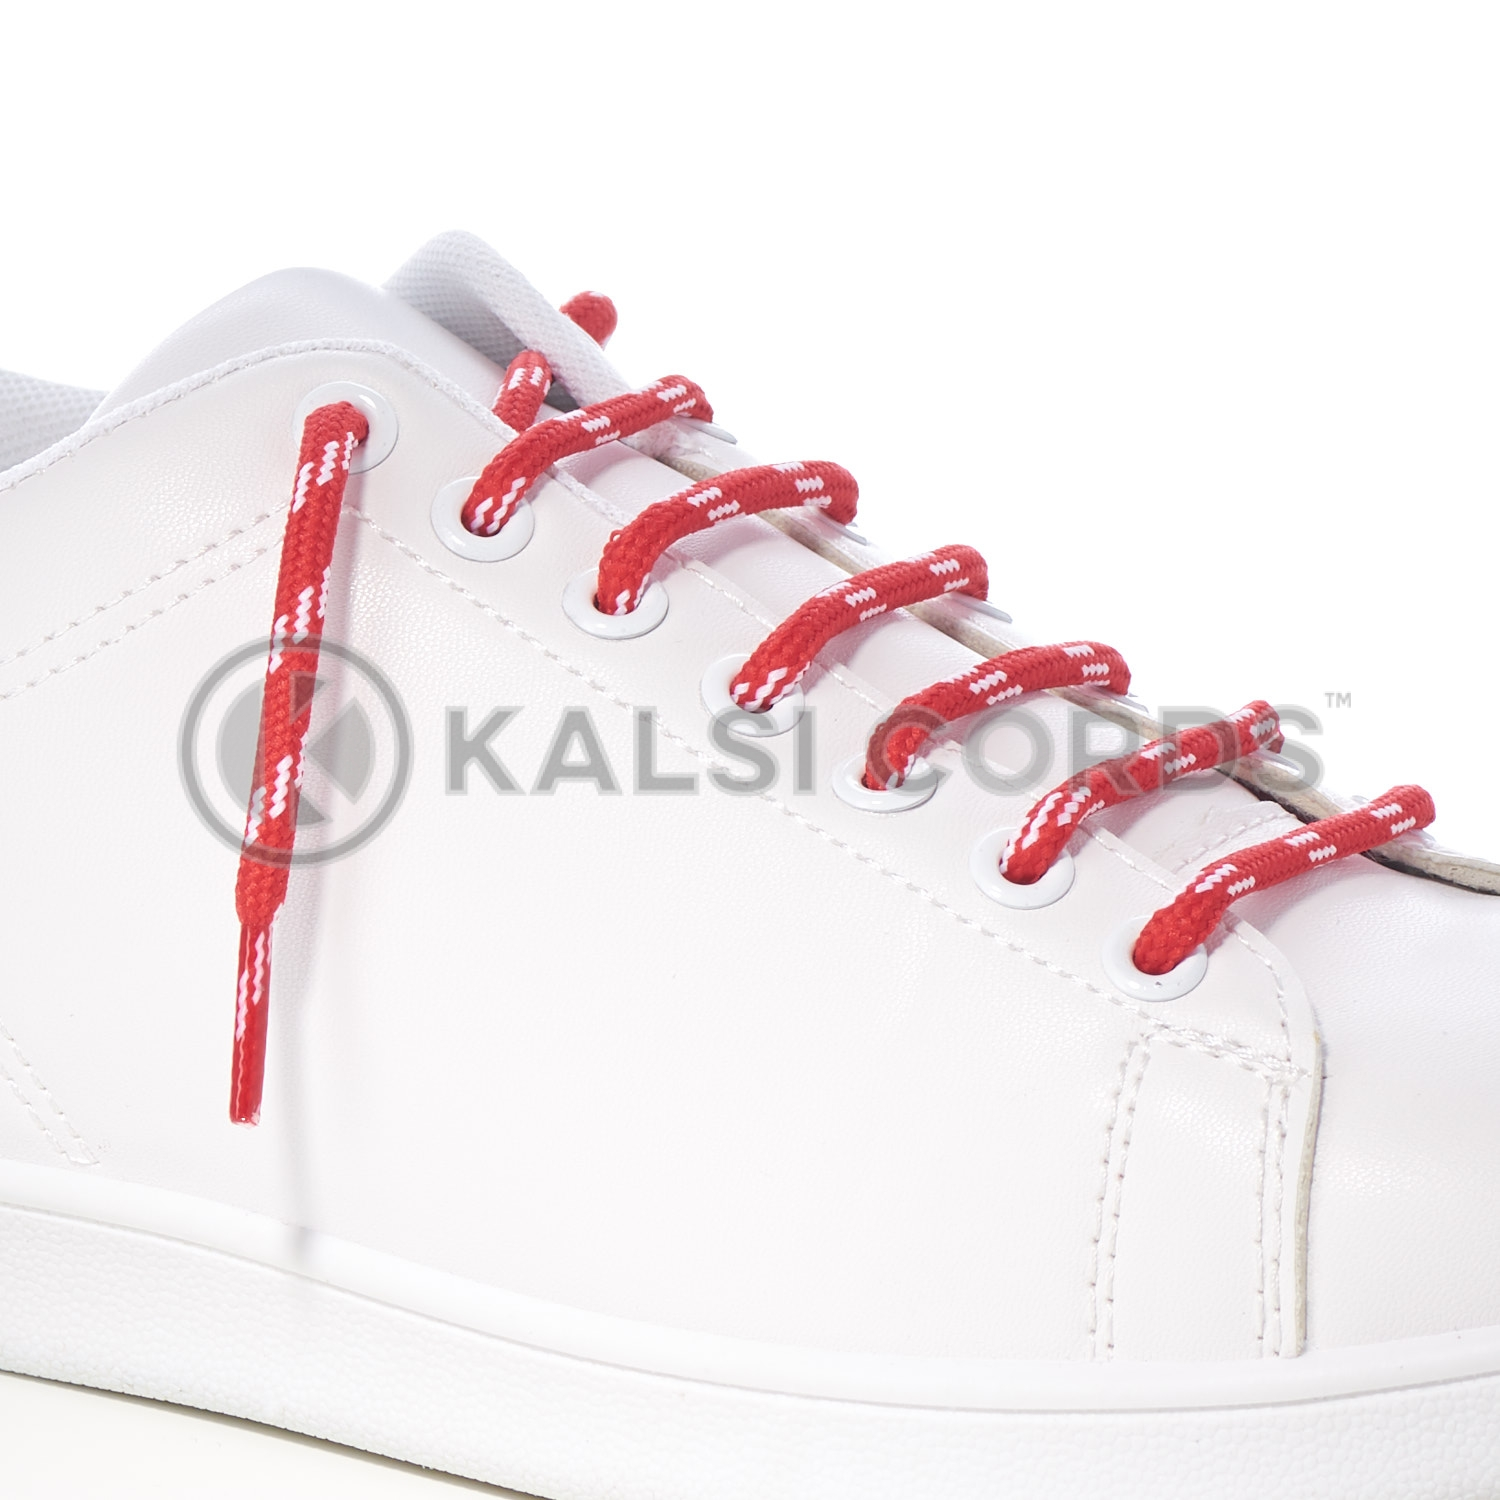 ROSE MADDER RED ROUND CORD SHOE LACES STRONG THICK ROPE LACE SPORT TRAINER BOOT